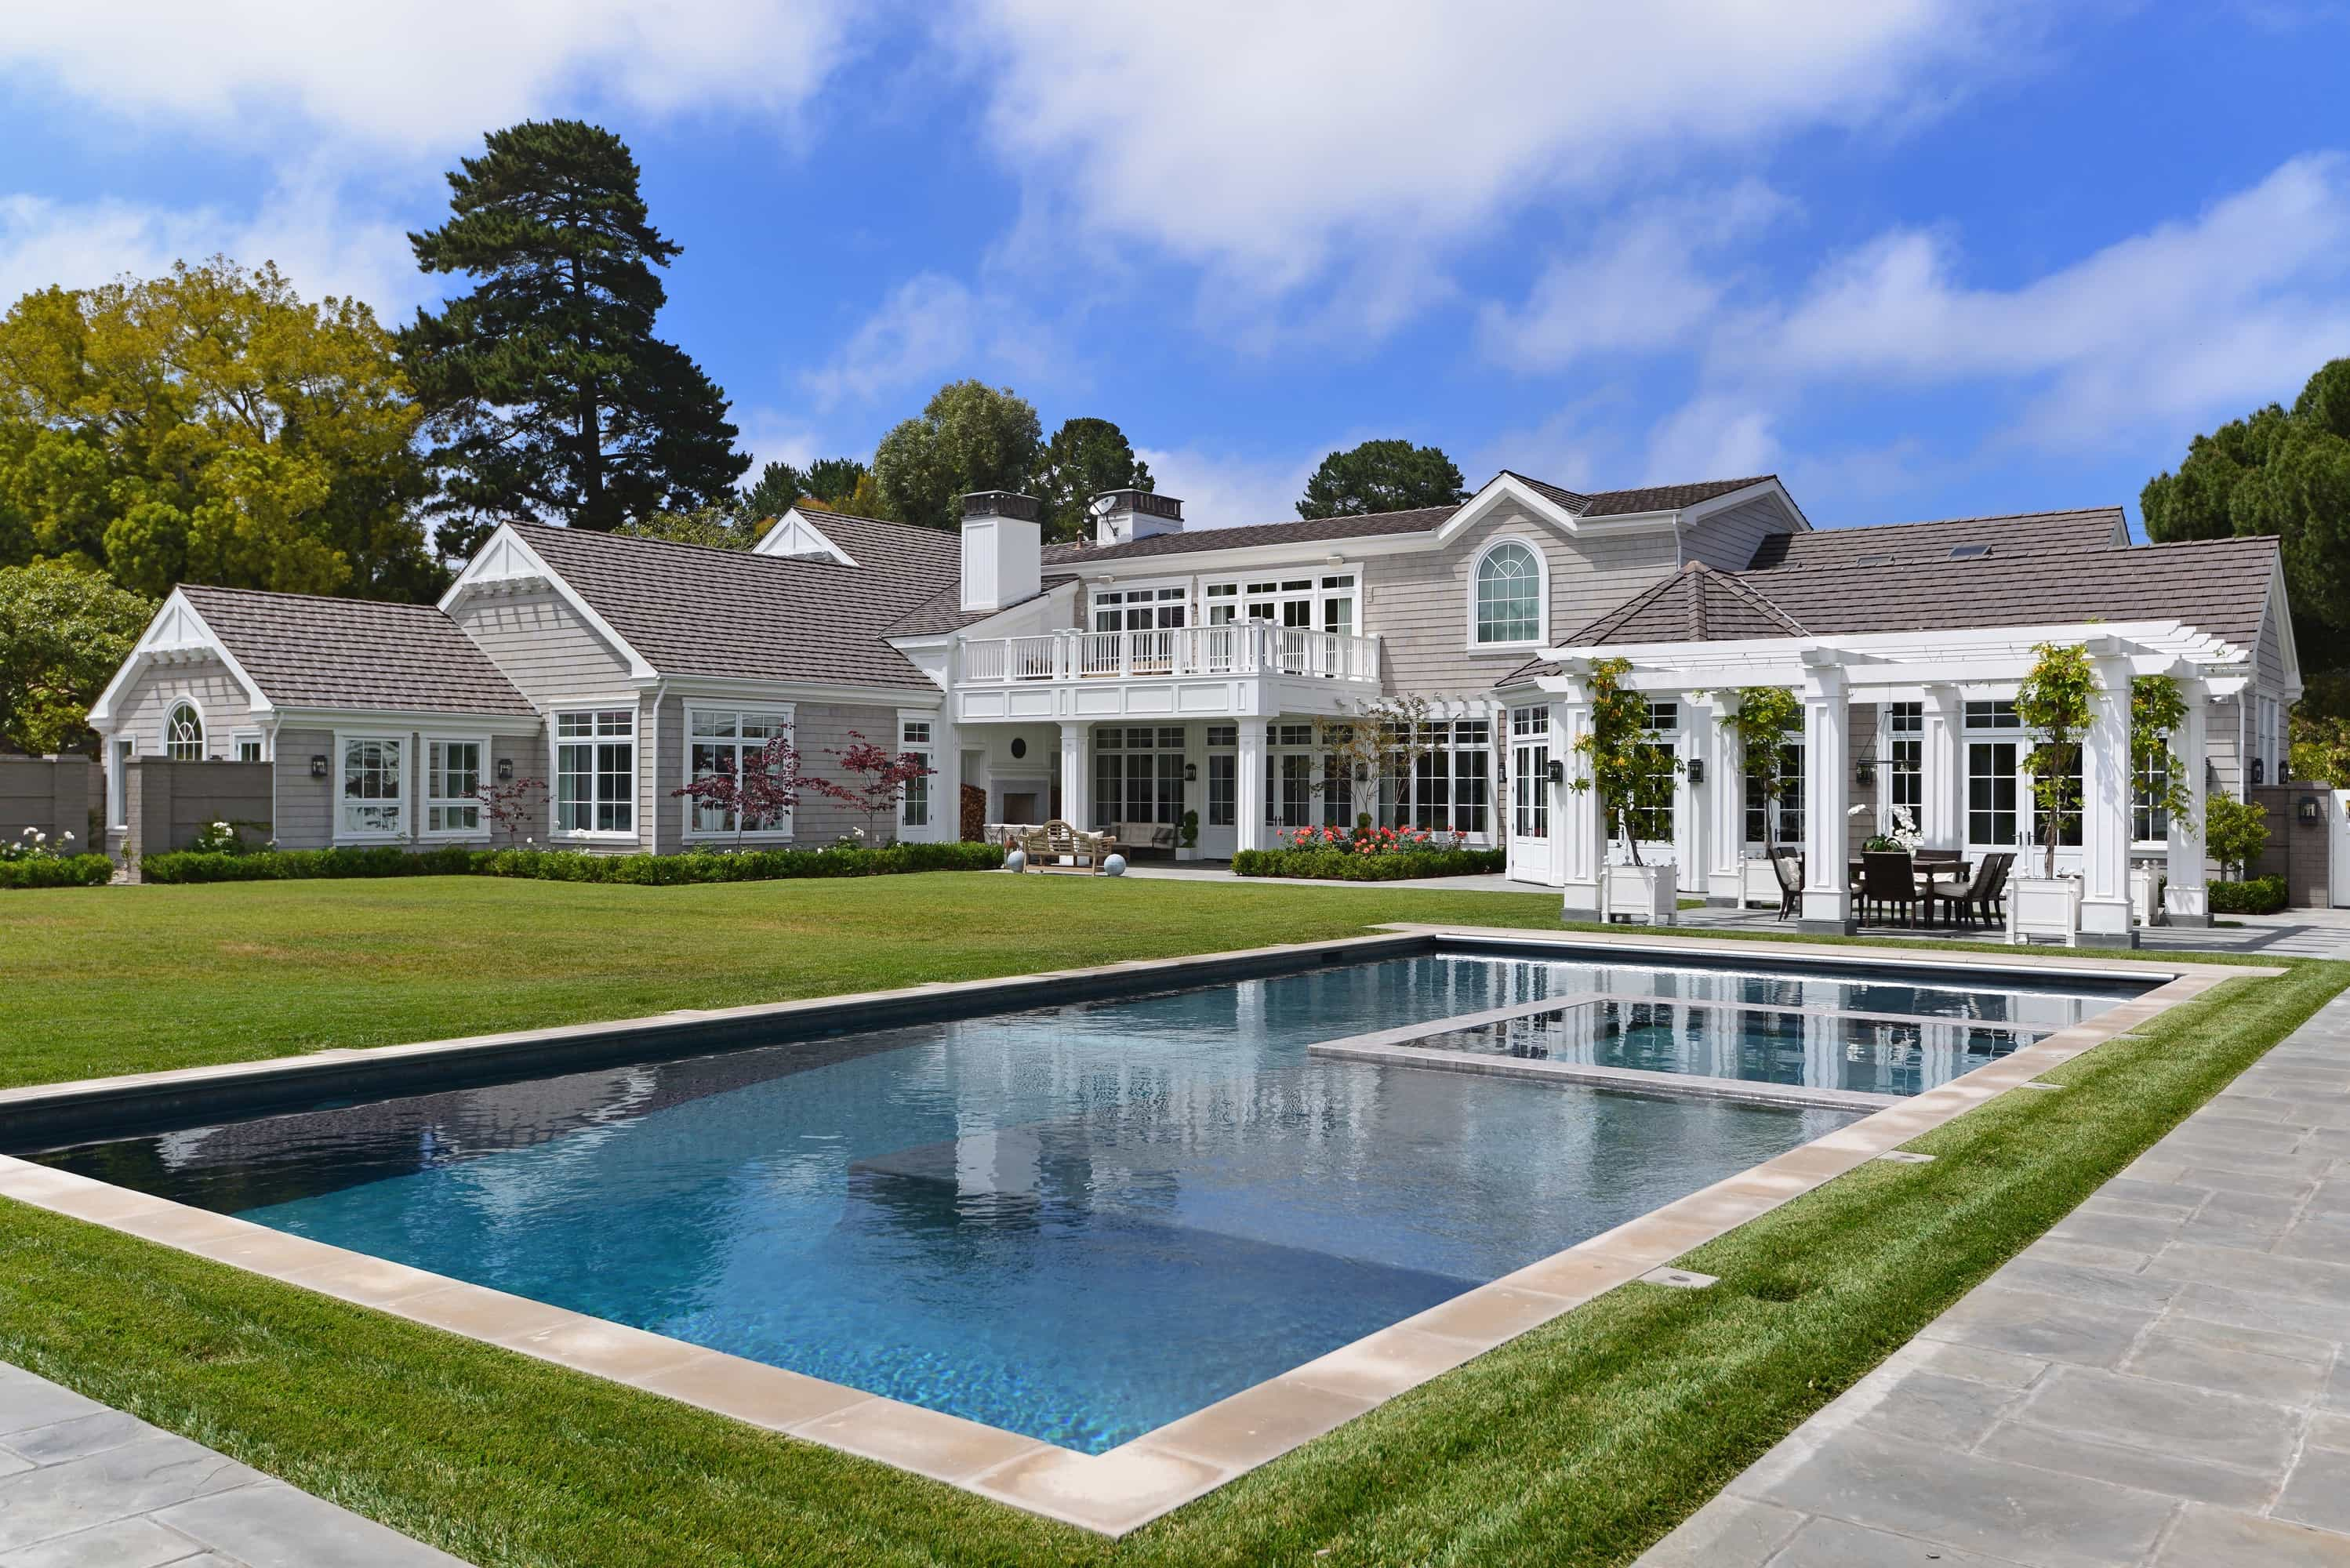 Featured Image of Gray Cape Cod With Manicured Backyard And Pool